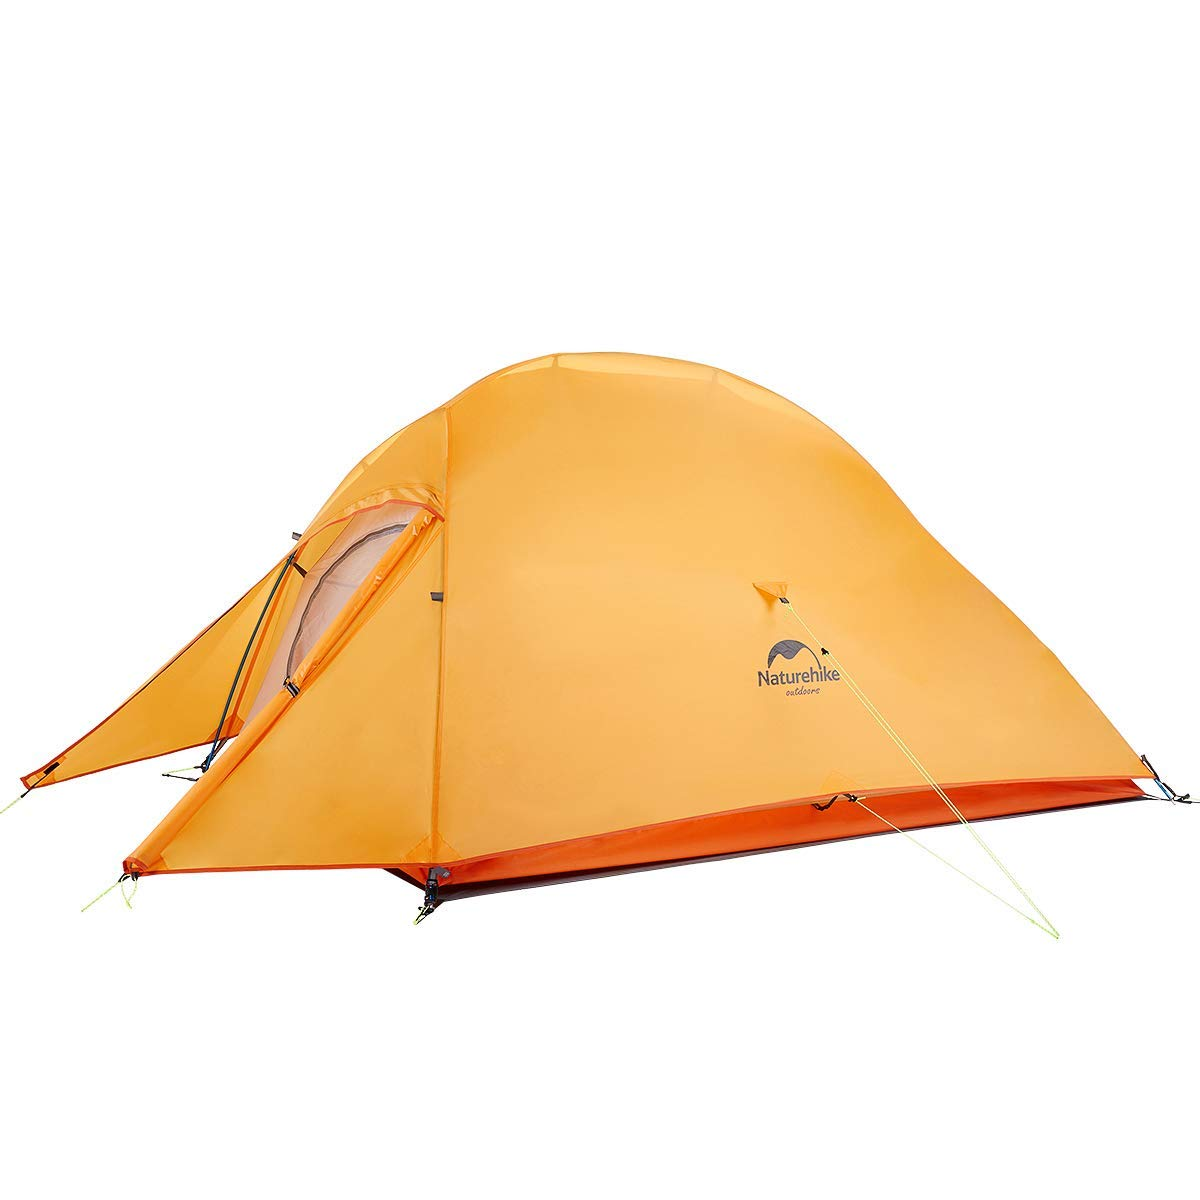 Naturehike Tent Cloud Up Upgrade Ultralight 2 Person Tent for Camping,Backpacking,Hiking (Orange(210T Polyester)) by Naturehike